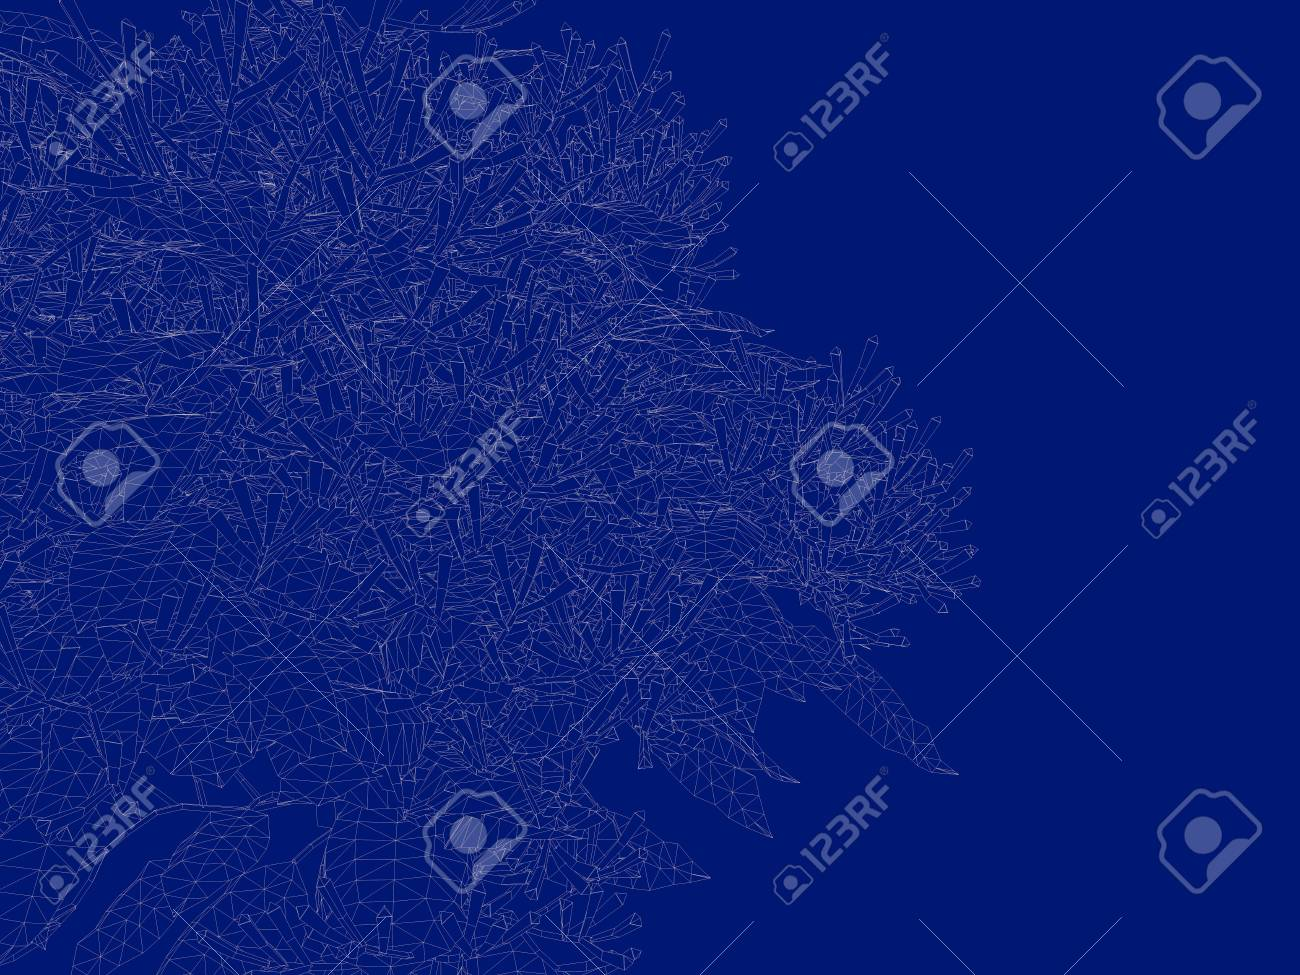 3d rendering of an outlined tree blueprint isolated on blue 3d rendering of an outlined tree blueprint isolated on blue background stock photo 84893847 malvernweather Gallery